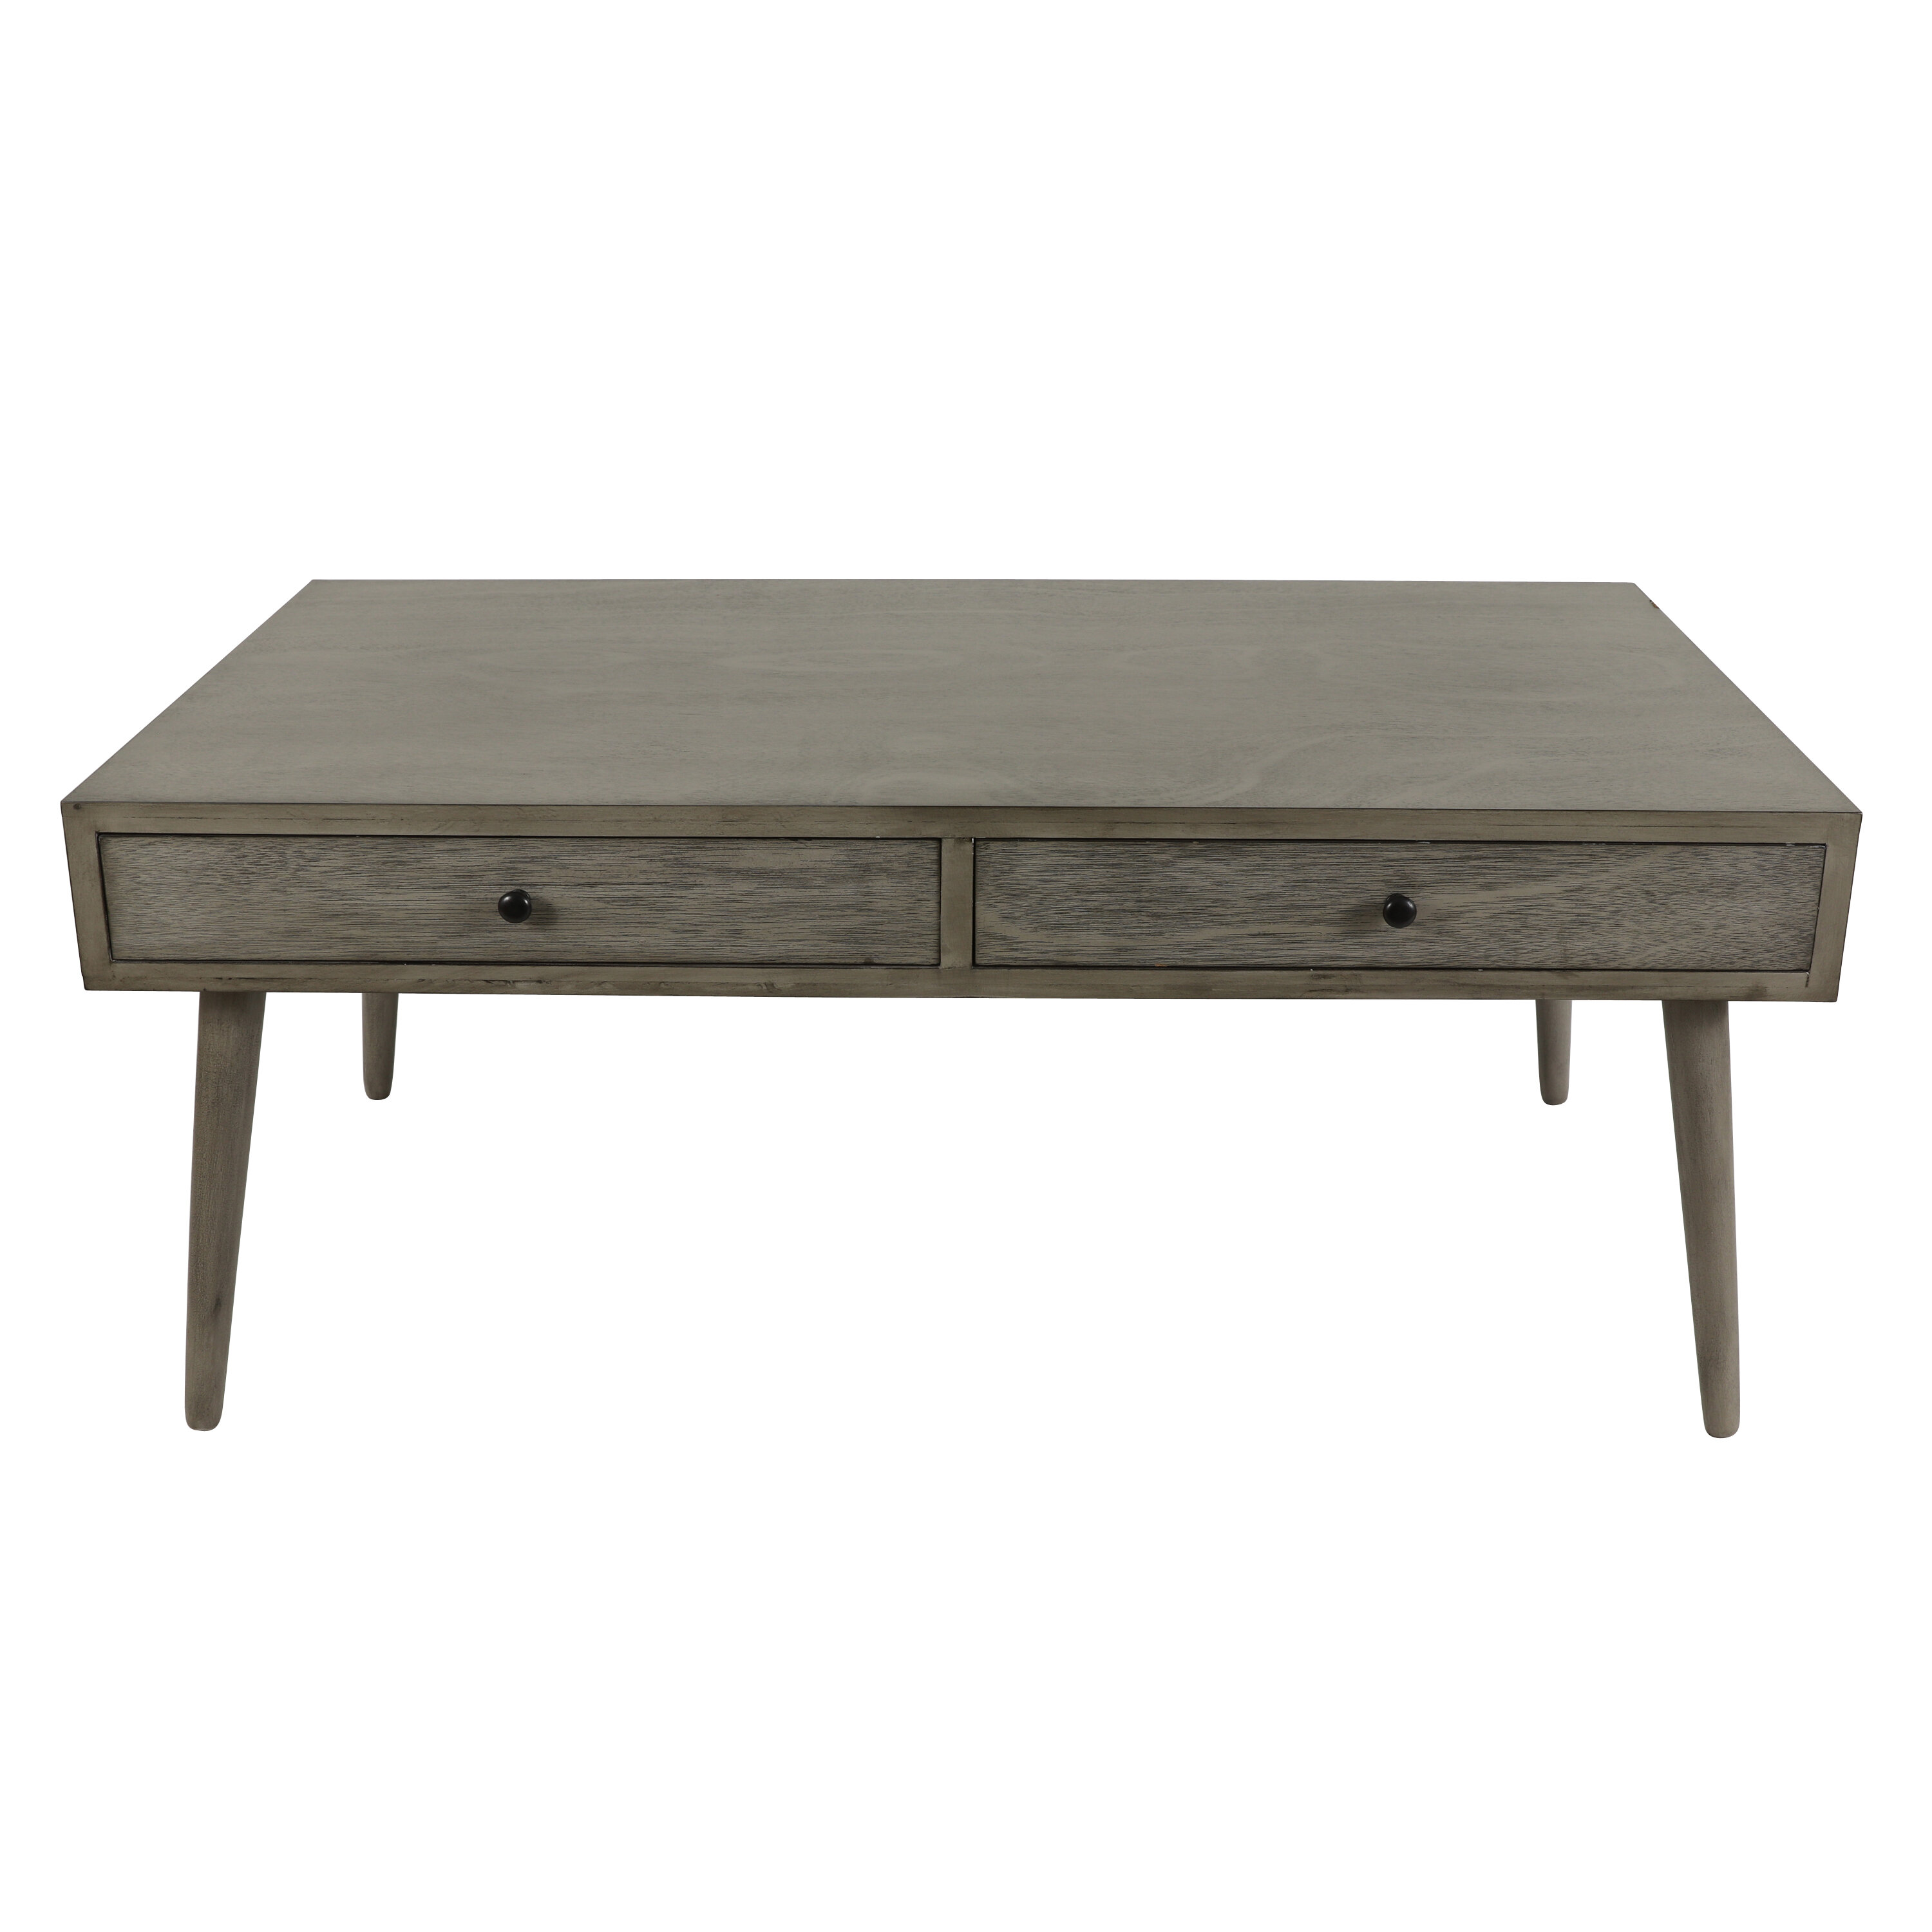 Stupendous Pelham Modern Coffee Table With Storage Cjindustries Chair Design For Home Cjindustriesco